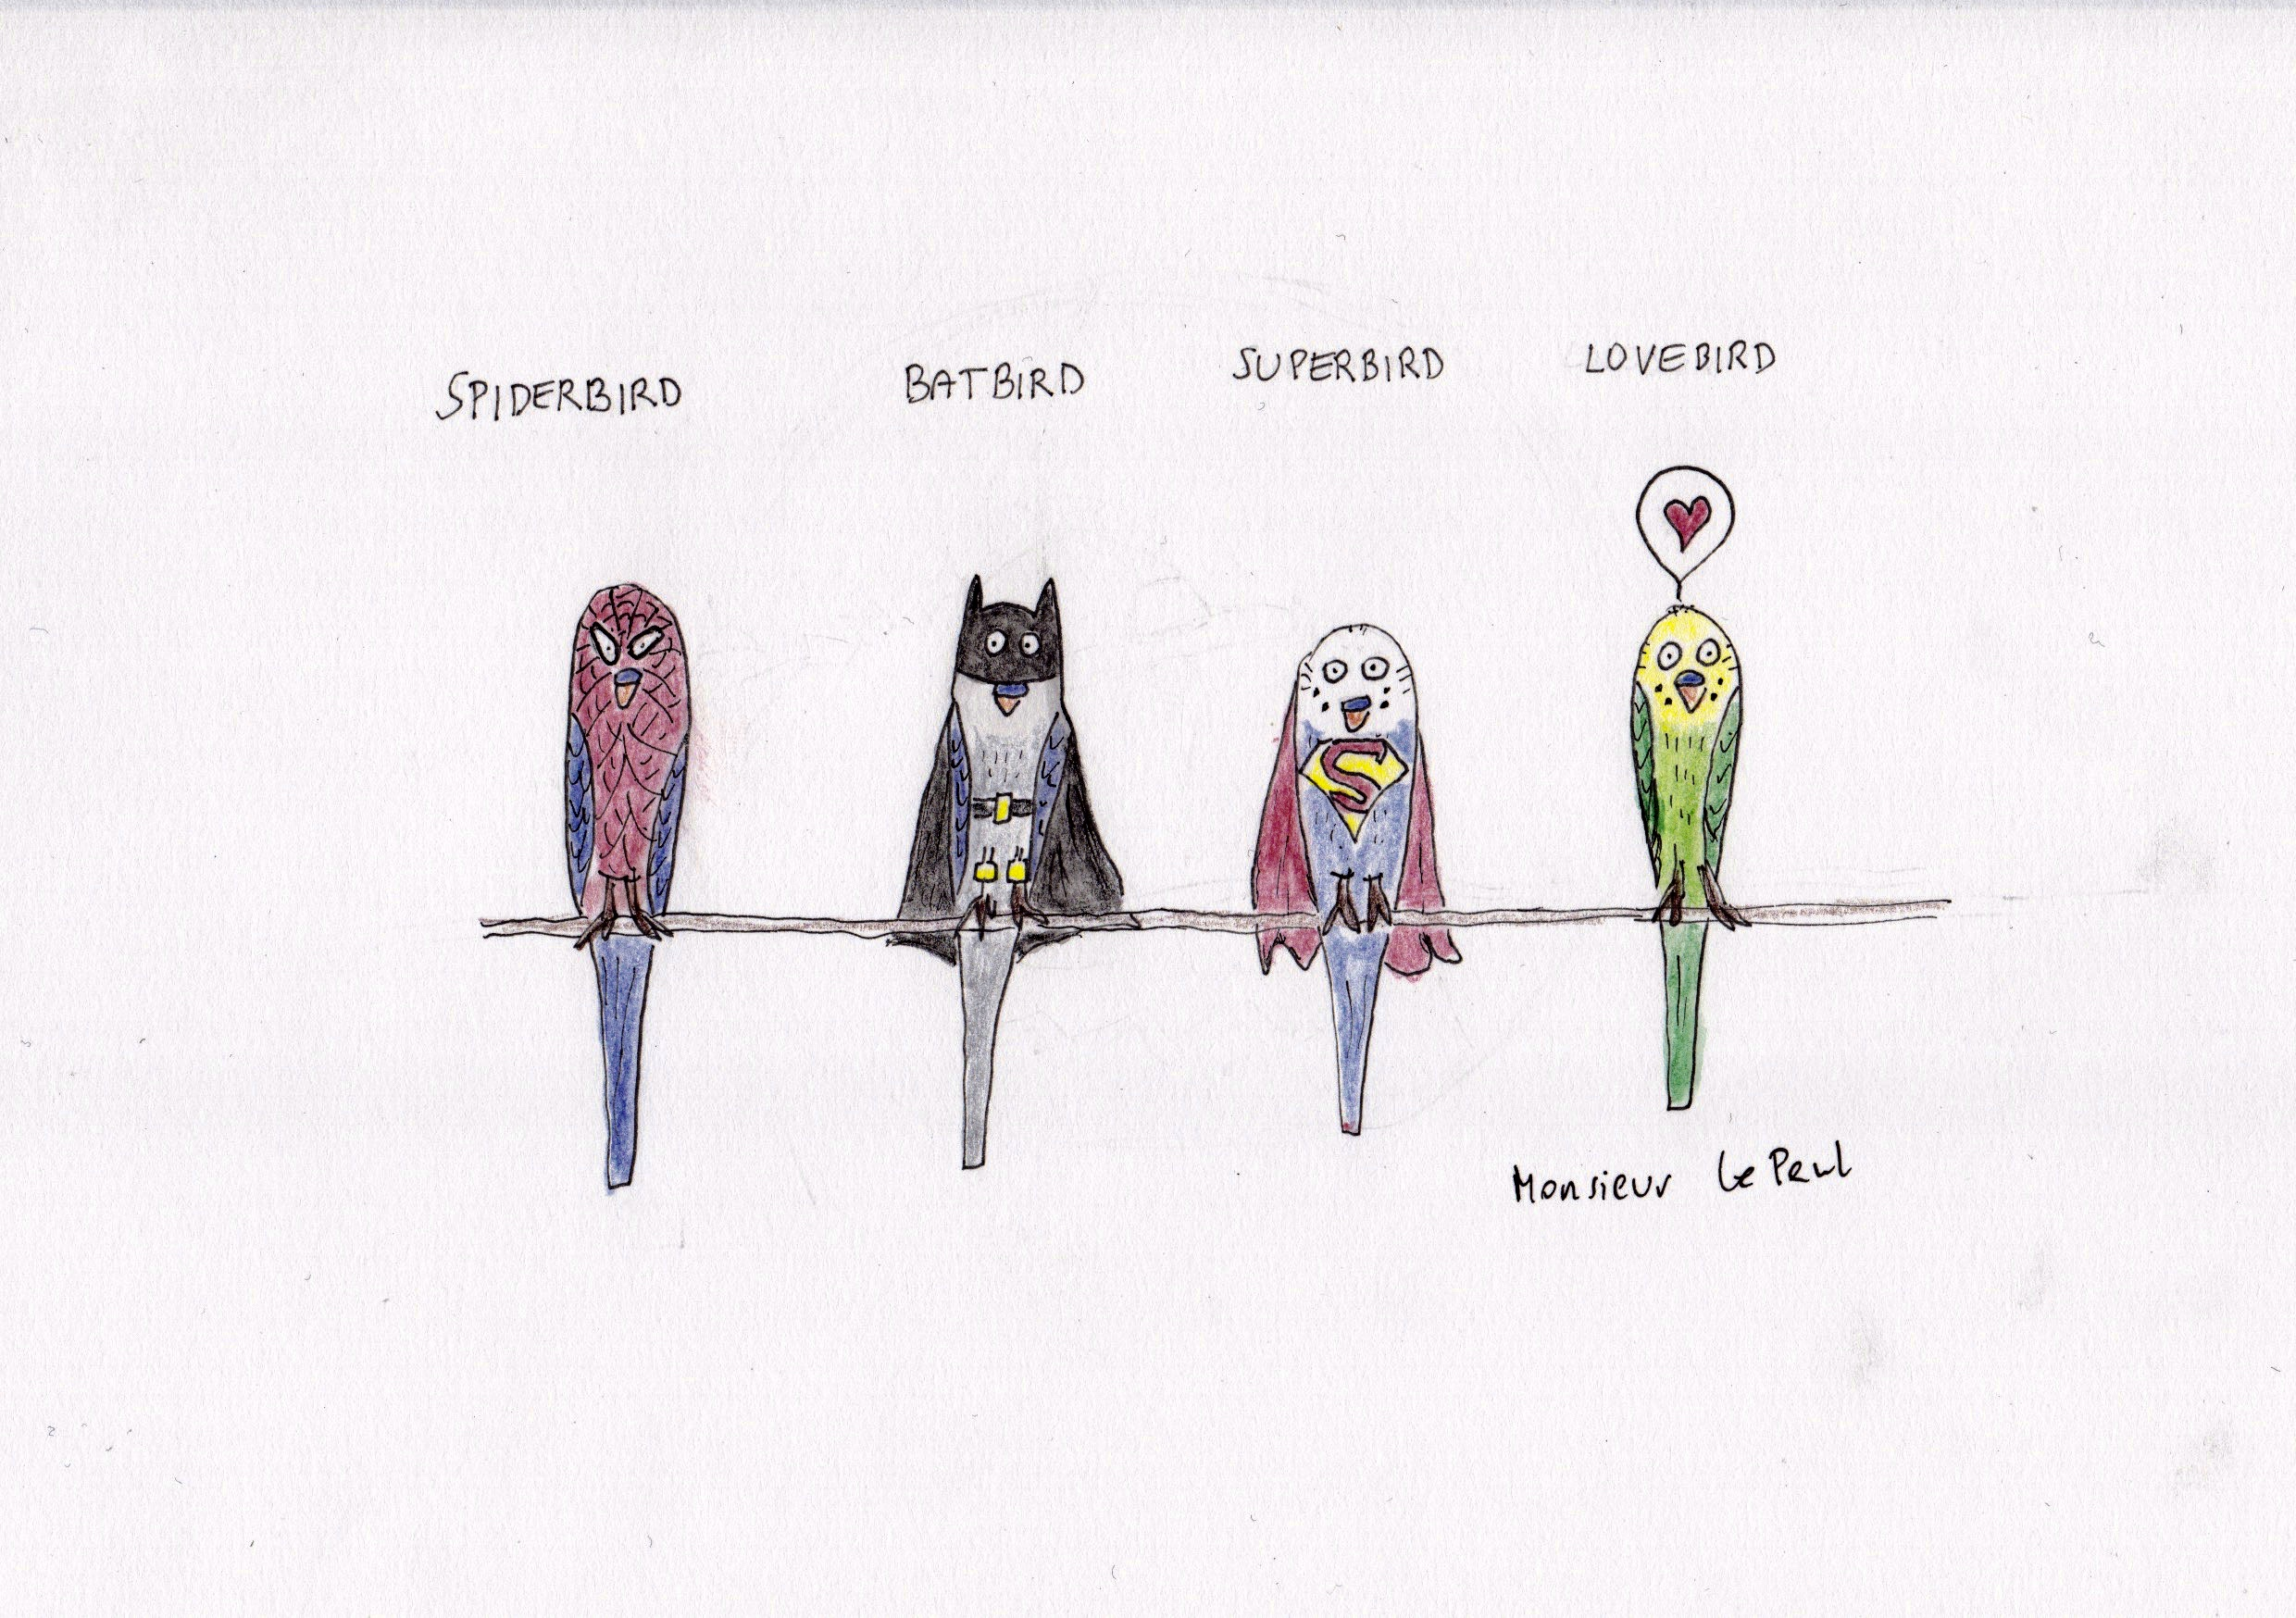 Wellensittiche, Spiderman, Superman, Batman, Lovebird